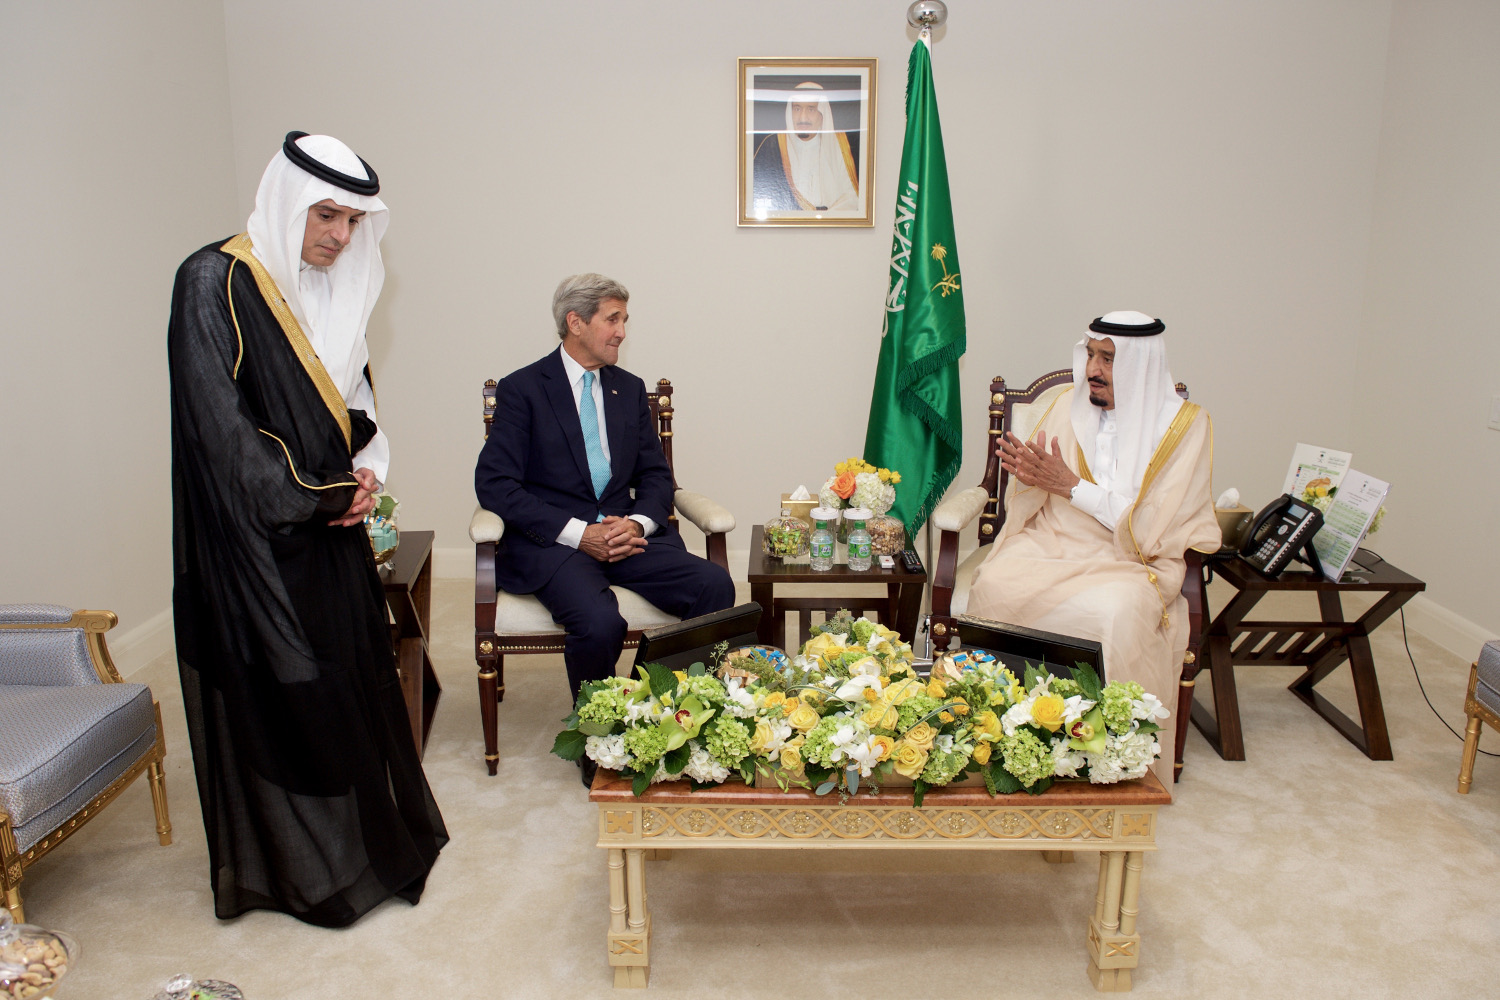 Secretary_Kerry_Sits_With_Saudi_King_Salman,_Foreign_Minister_al-Jubeir_Before_Bilateral_Meeting_in_Washington_(21148062001)